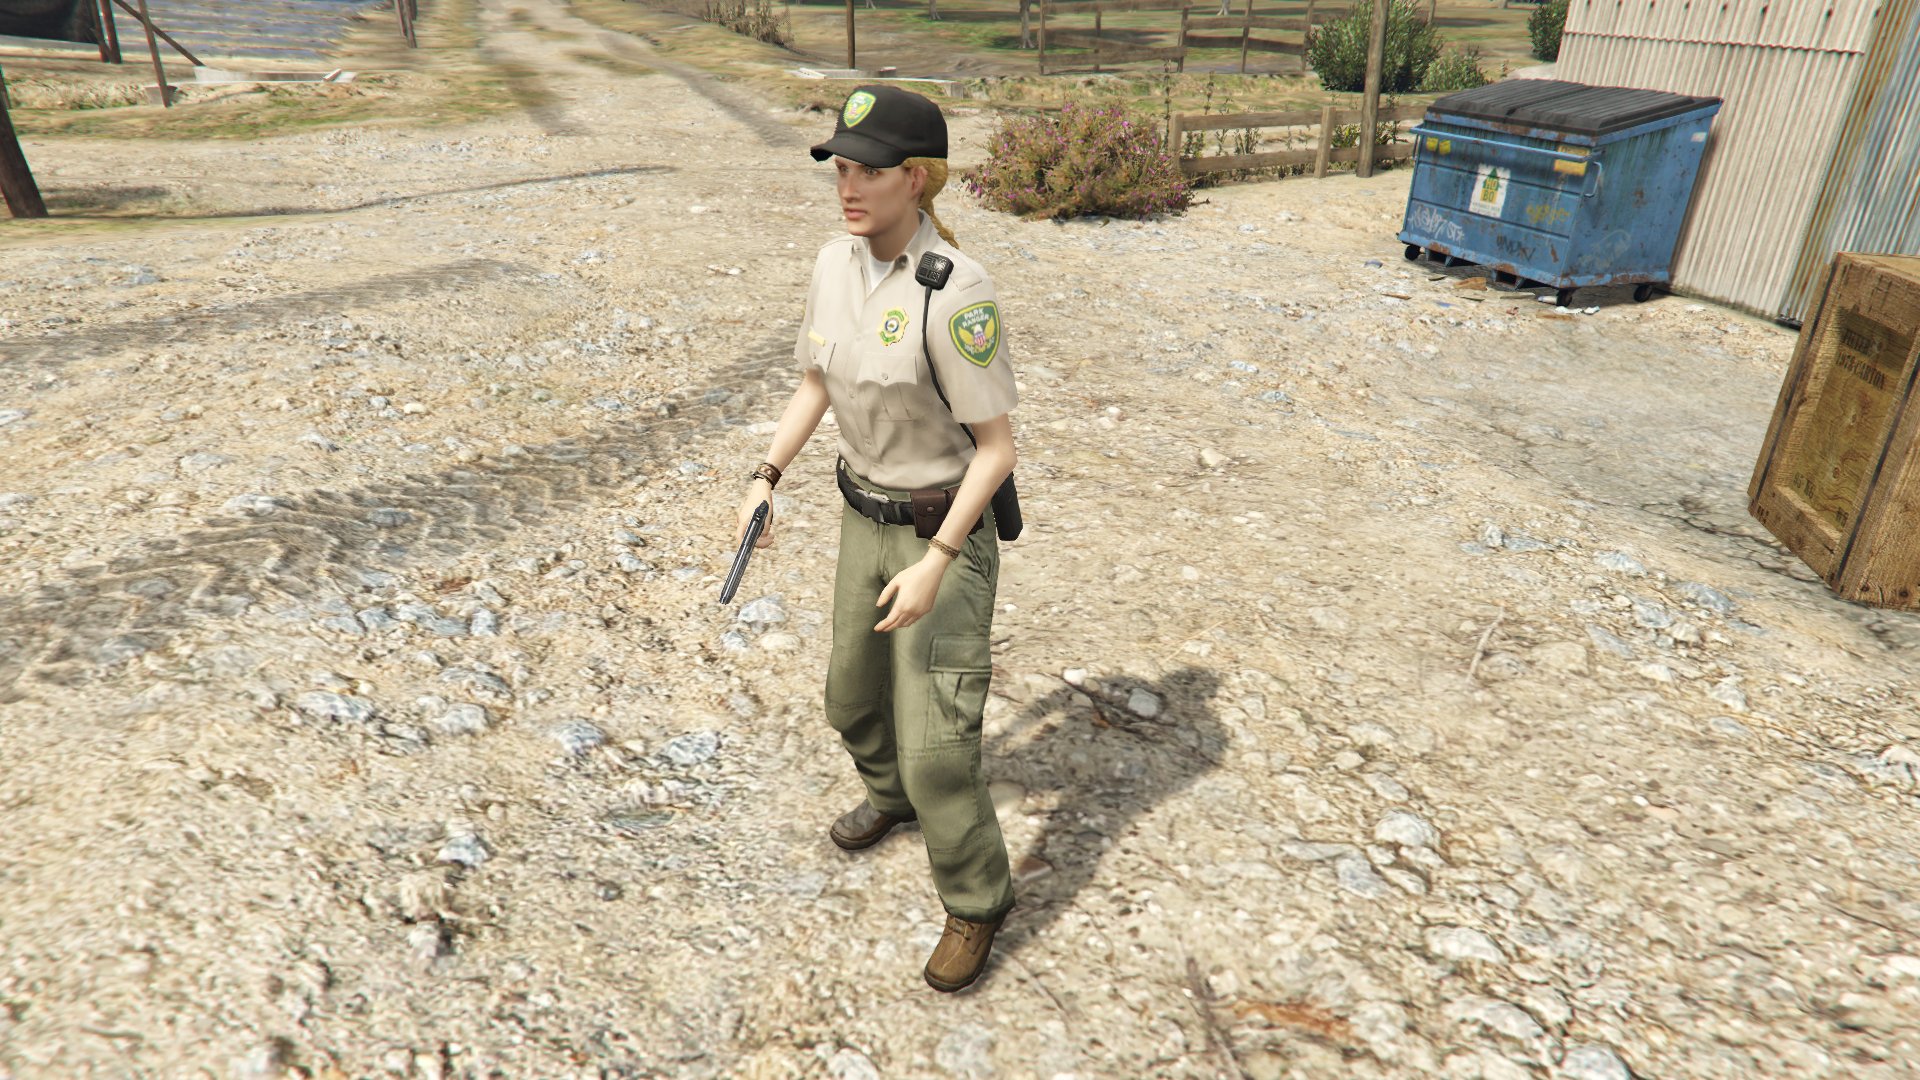 Jessica the Park Ranger